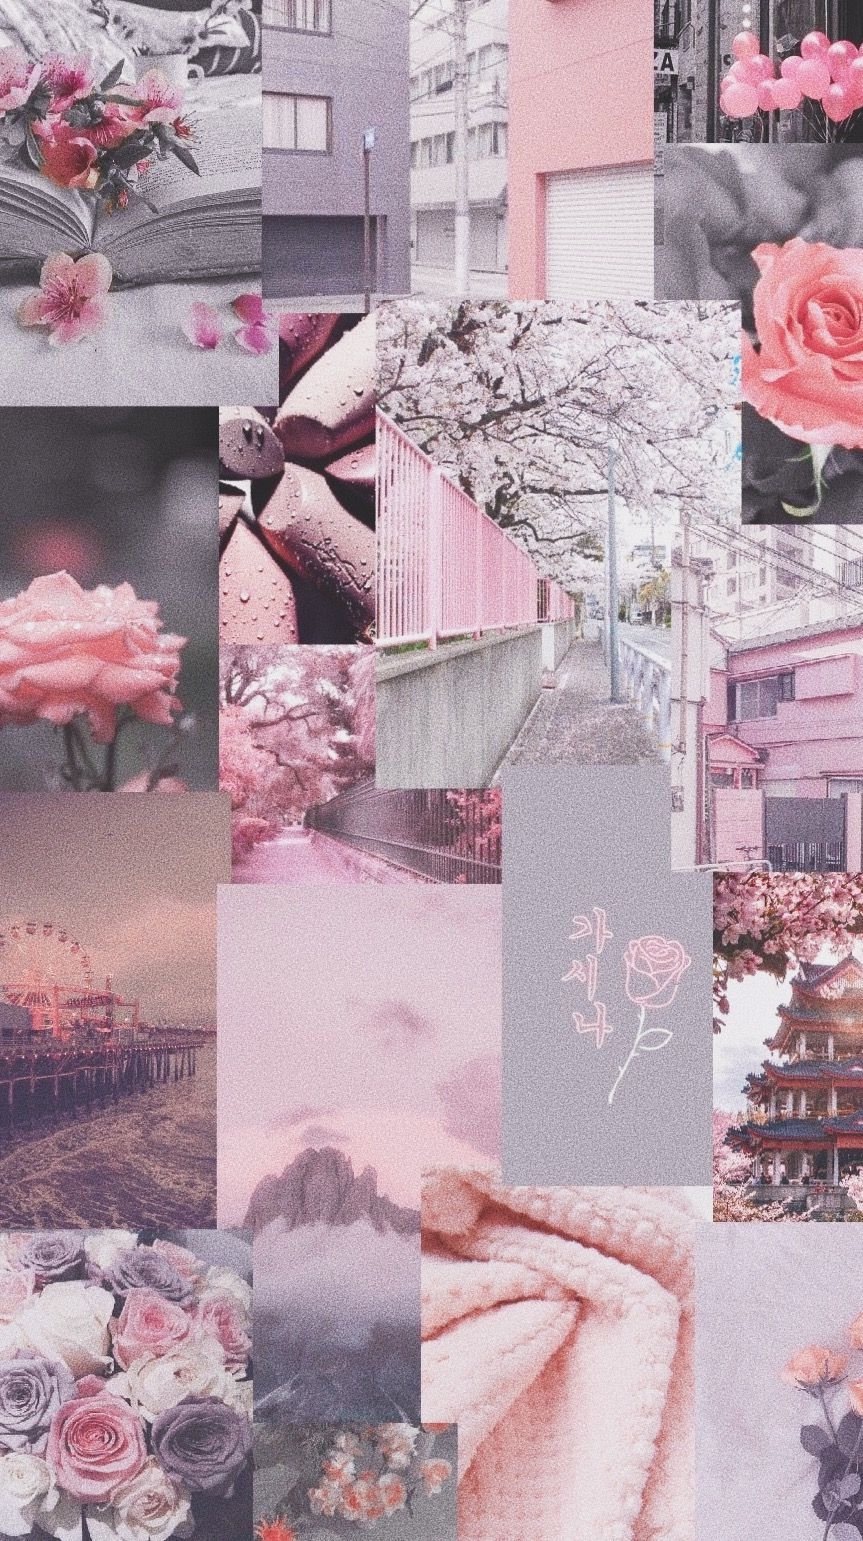 Pink And Grey Aesthetic Wallpaper In 2020 Pink And Grey Wallpaper Gray Aesthetic Grey Wallpaper